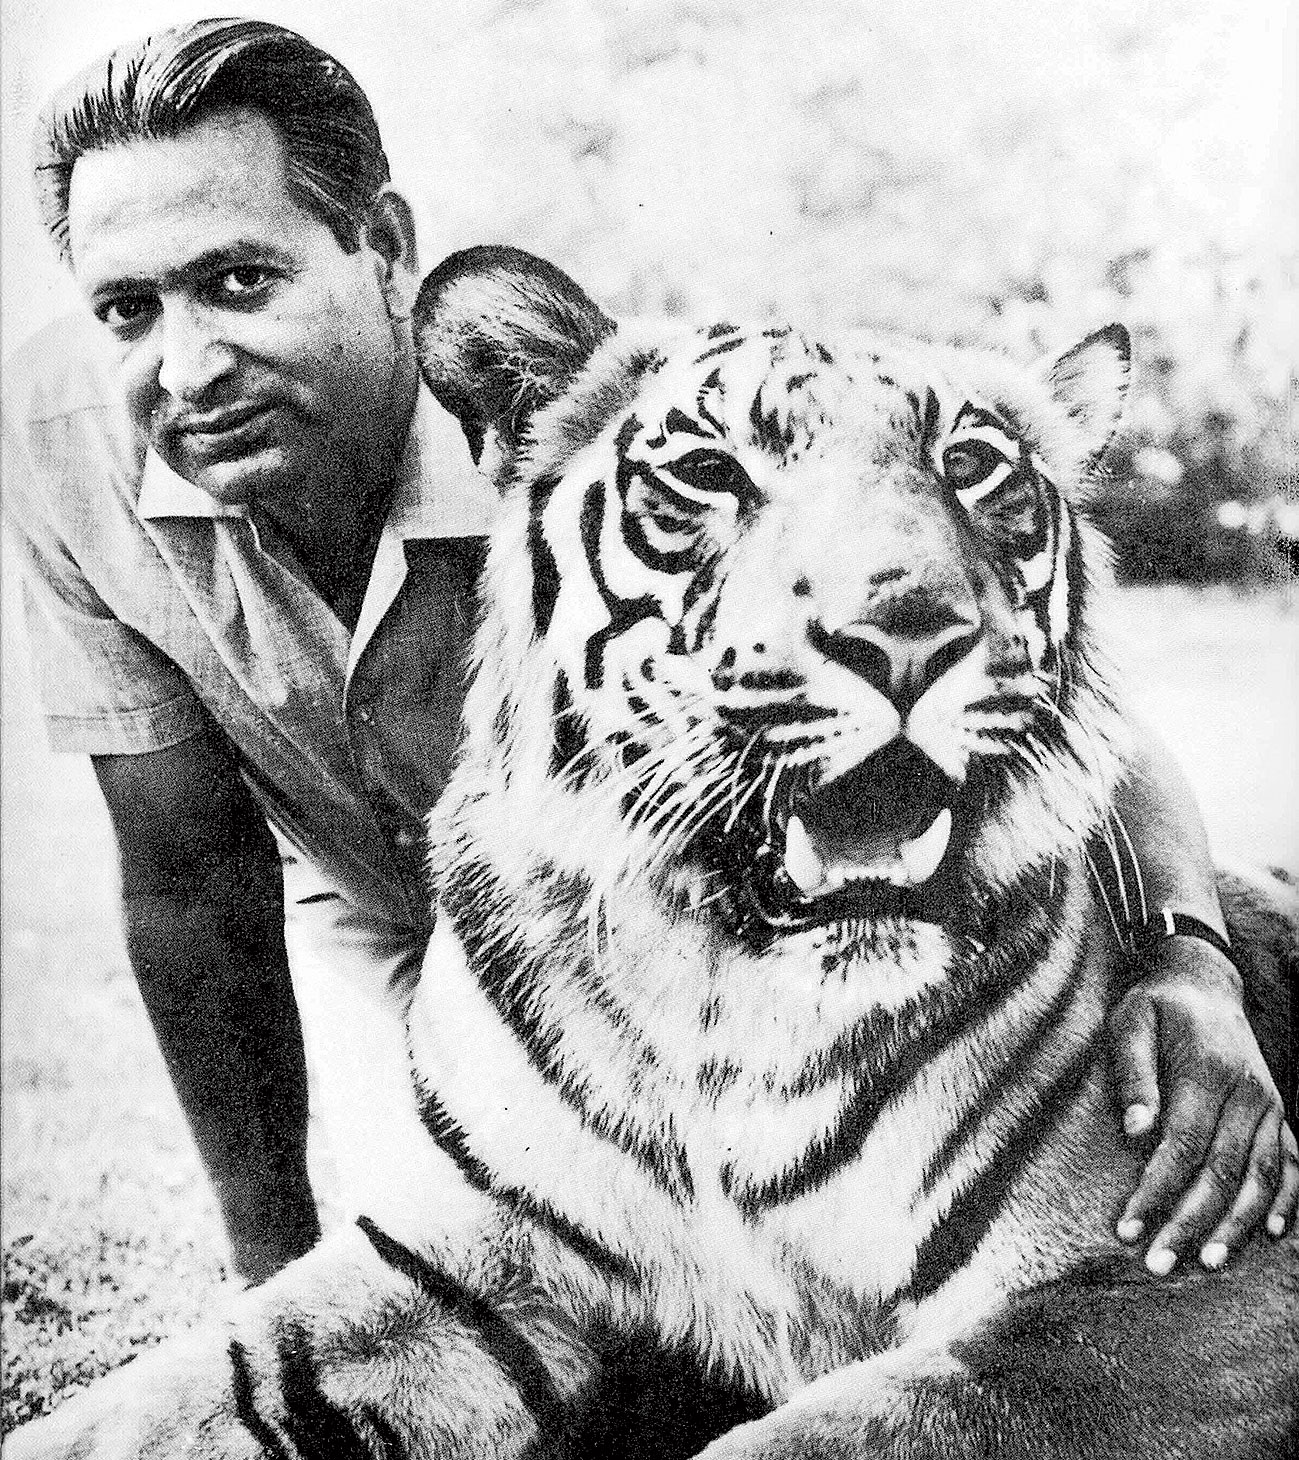 Kailash Sankhala, the first director of Project Tiger